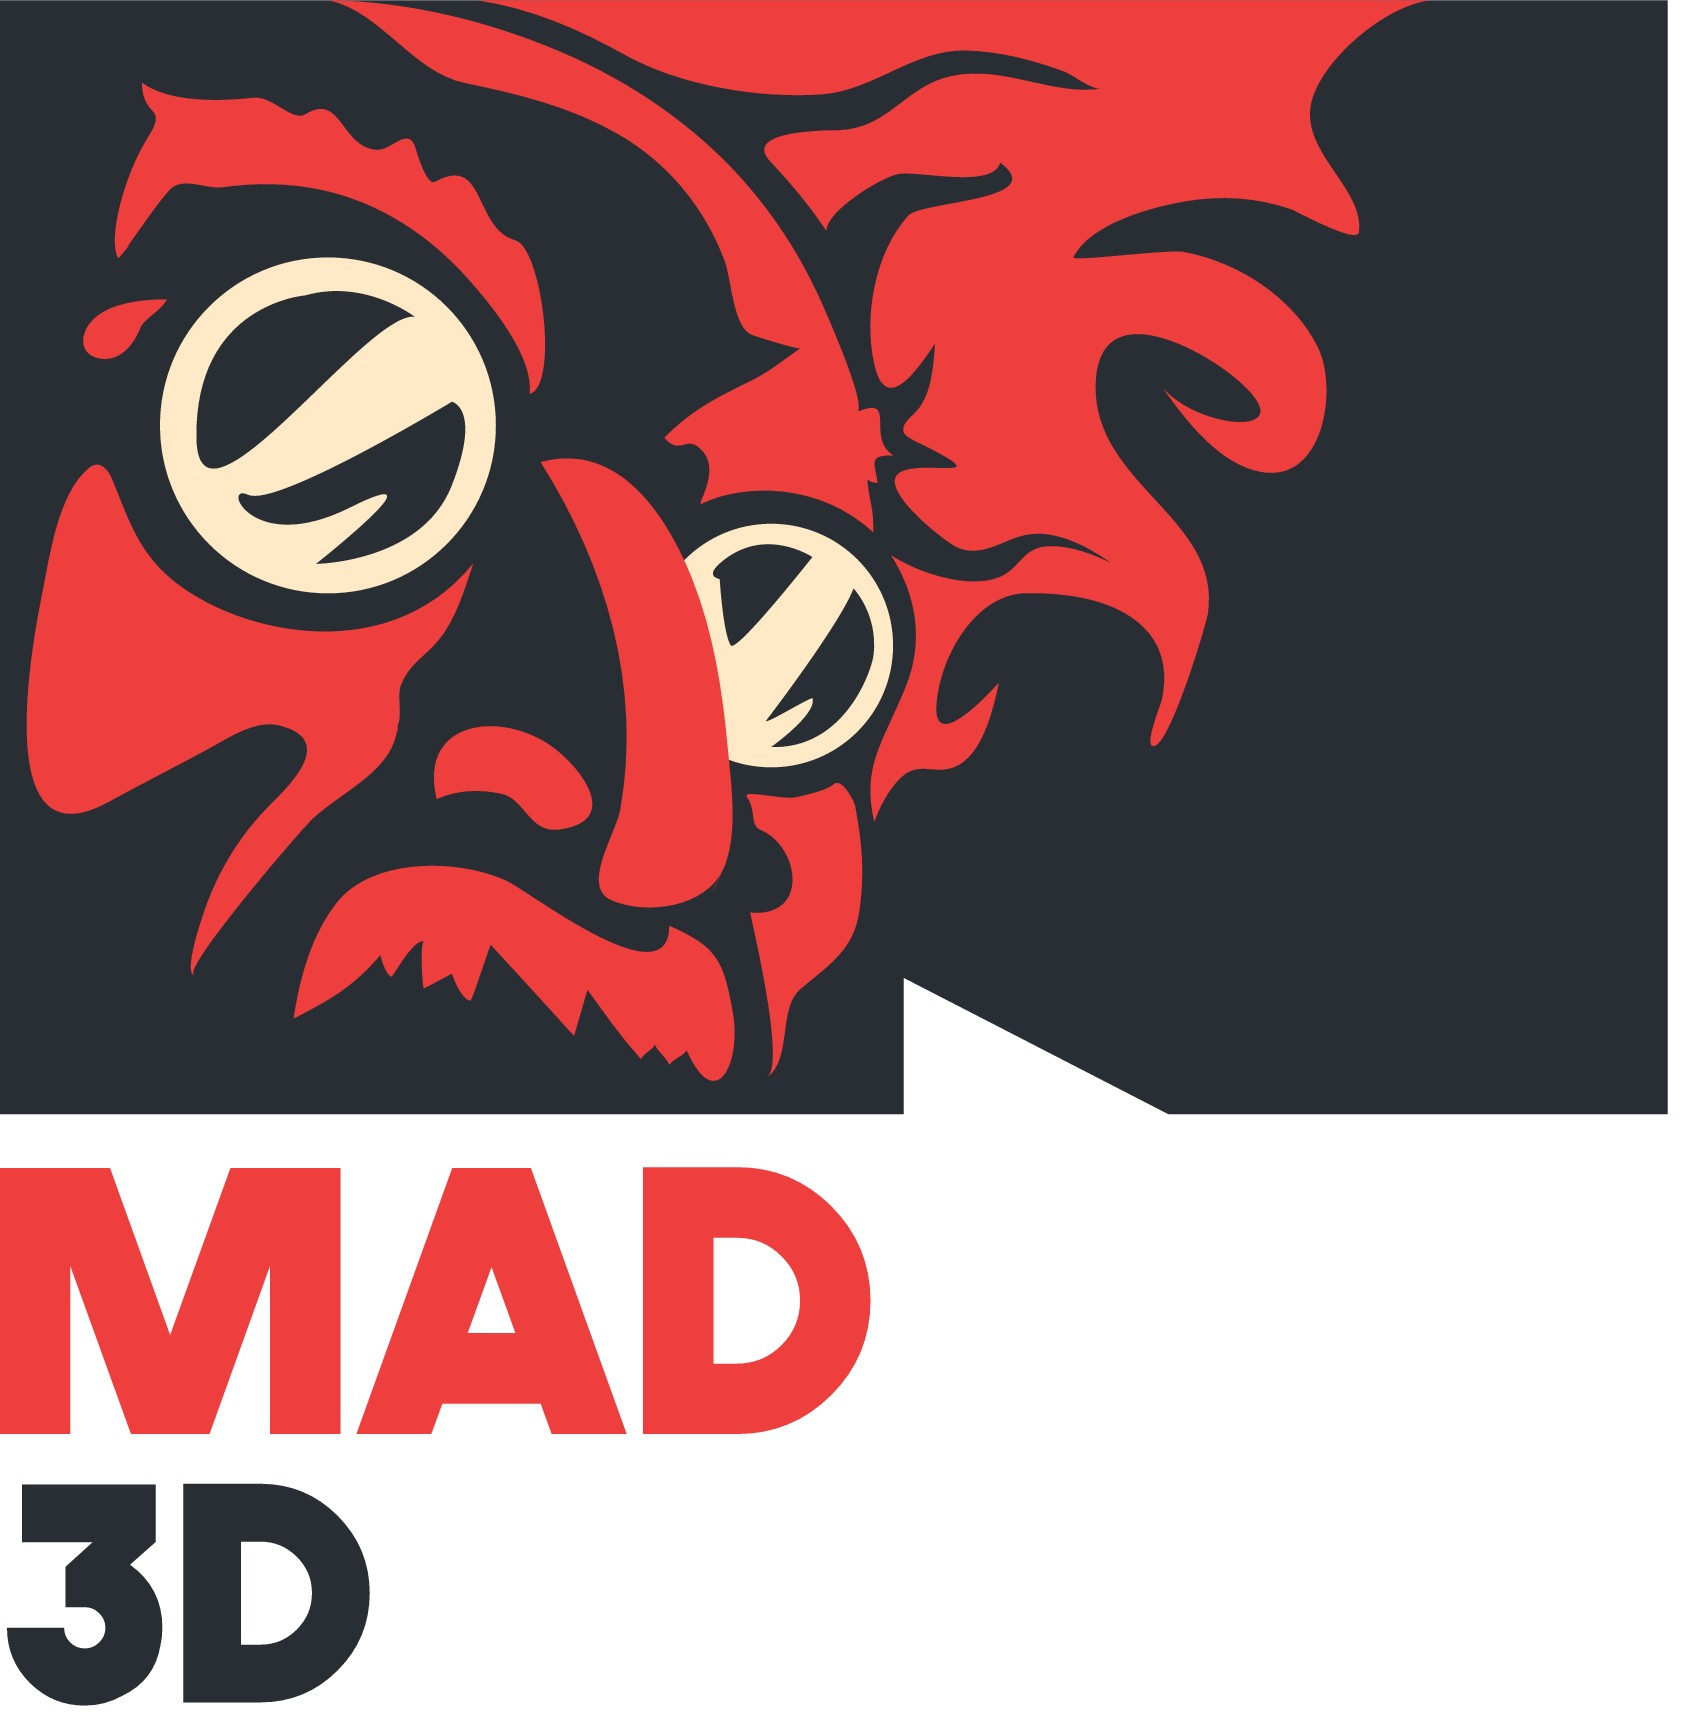 MAD JACK 3D PRINTS Logo!  GUARANTEED Contest!!!  Mad Scientist Mascot!